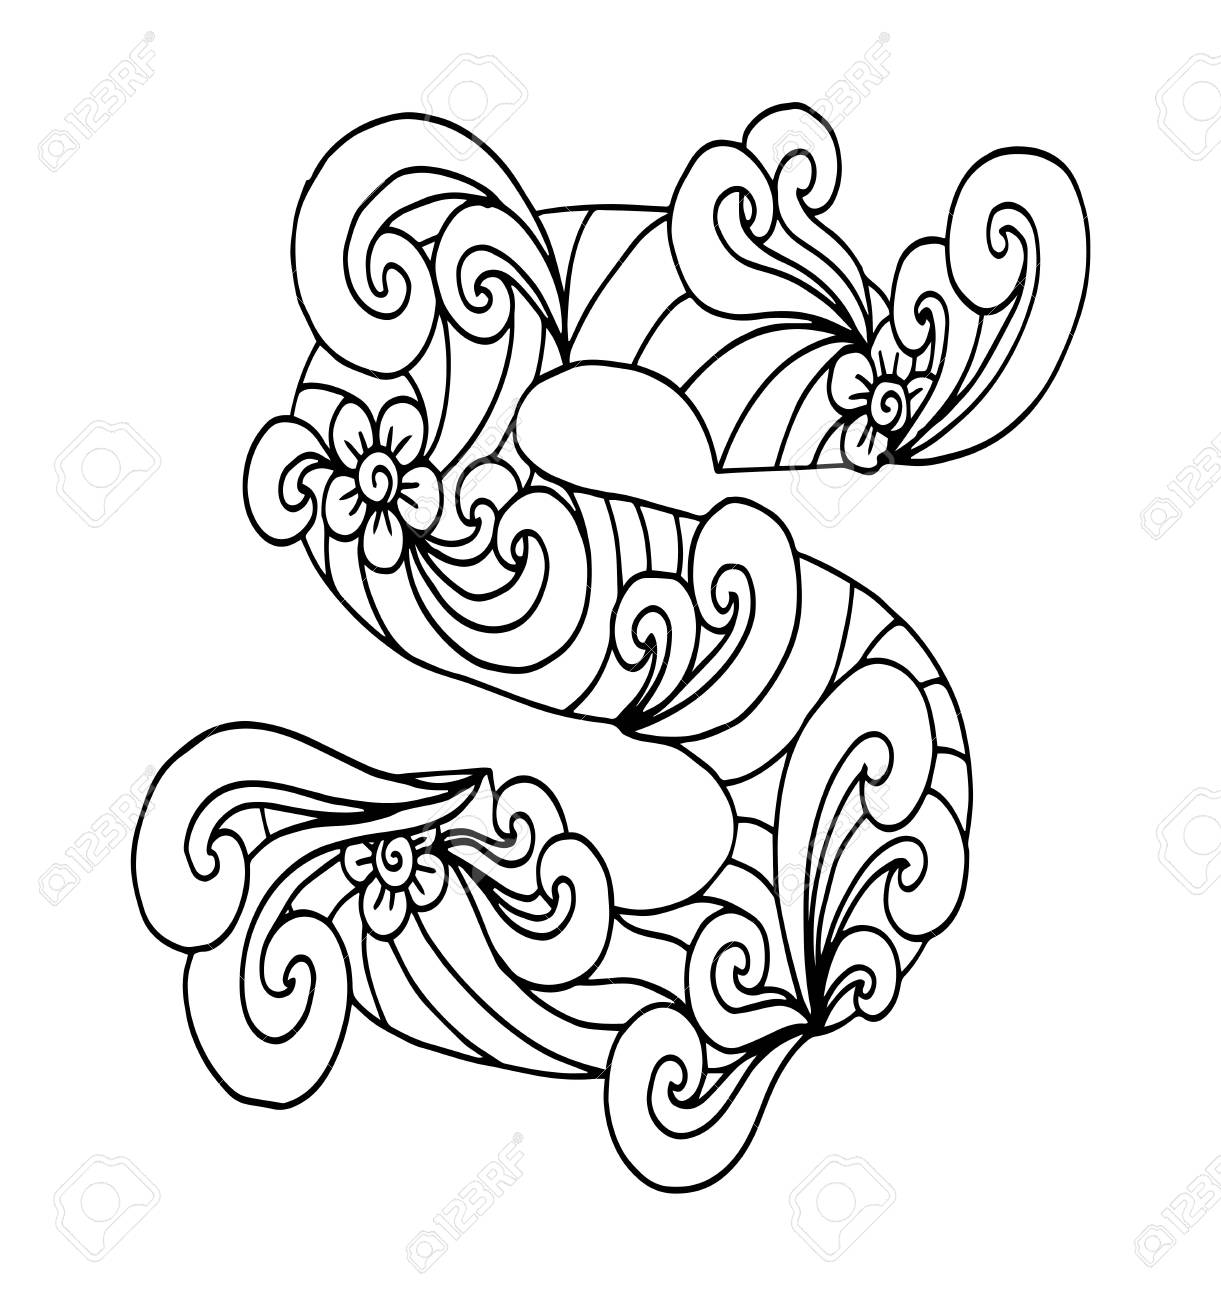 Zentangle Stylized Alphabet Letter S In Doodle Style Hand Drawn